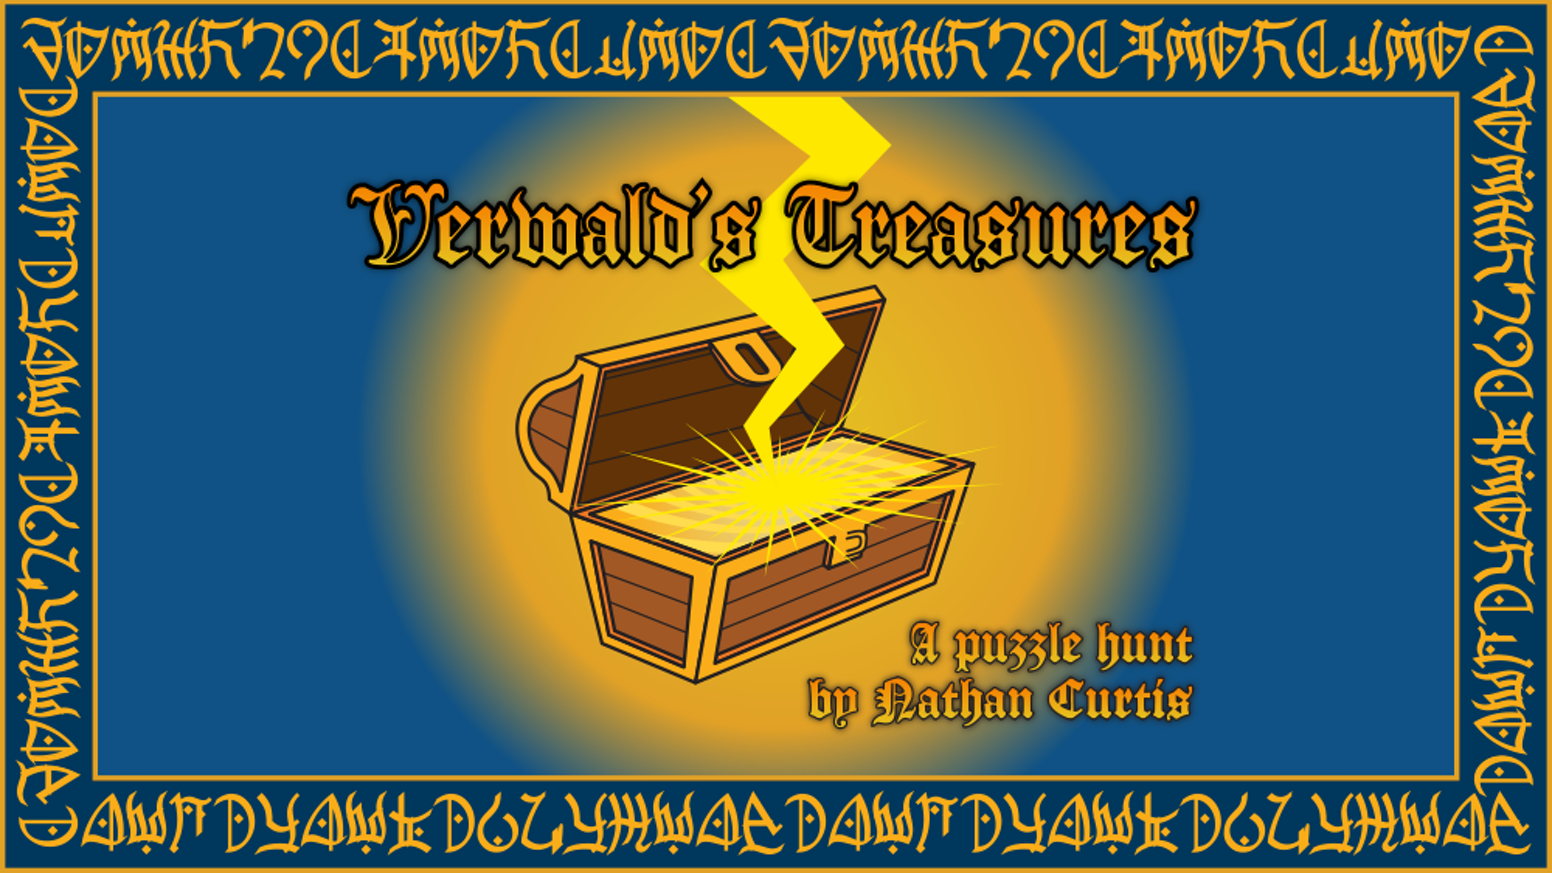 Verwald's Treasures by Nathan Curtis — Kickstarter